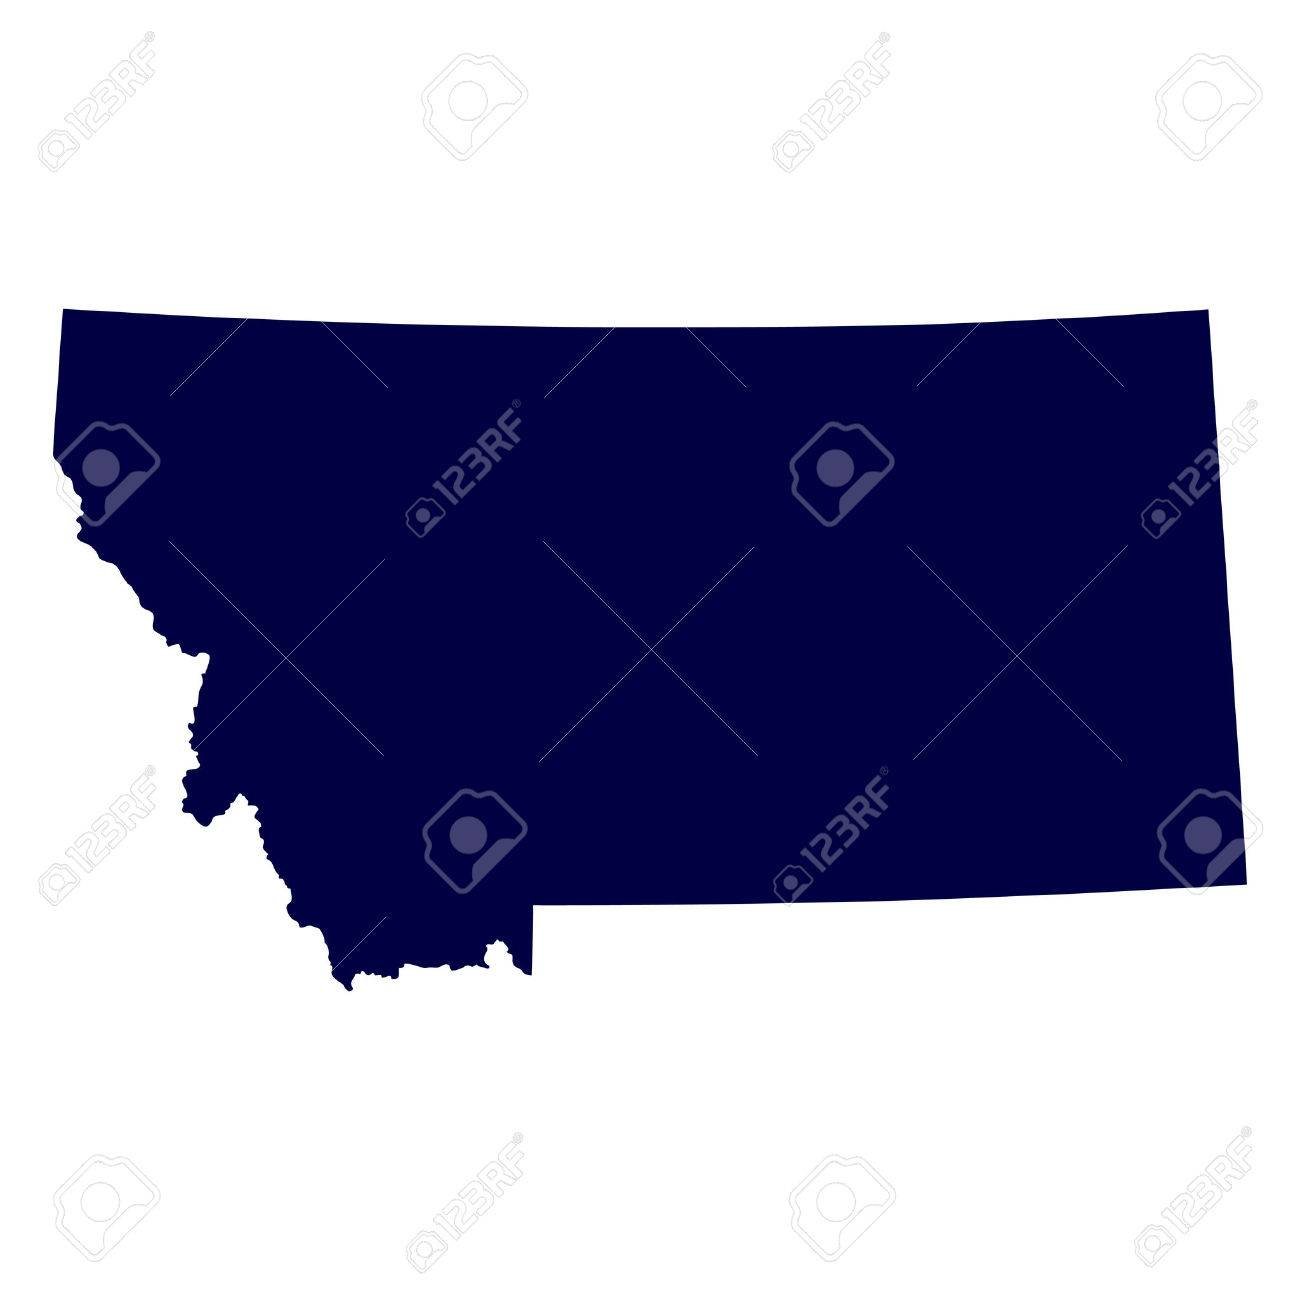 Map Of The U S State Of Montana Royalty Free Cliparts Vectors - Montana on us map